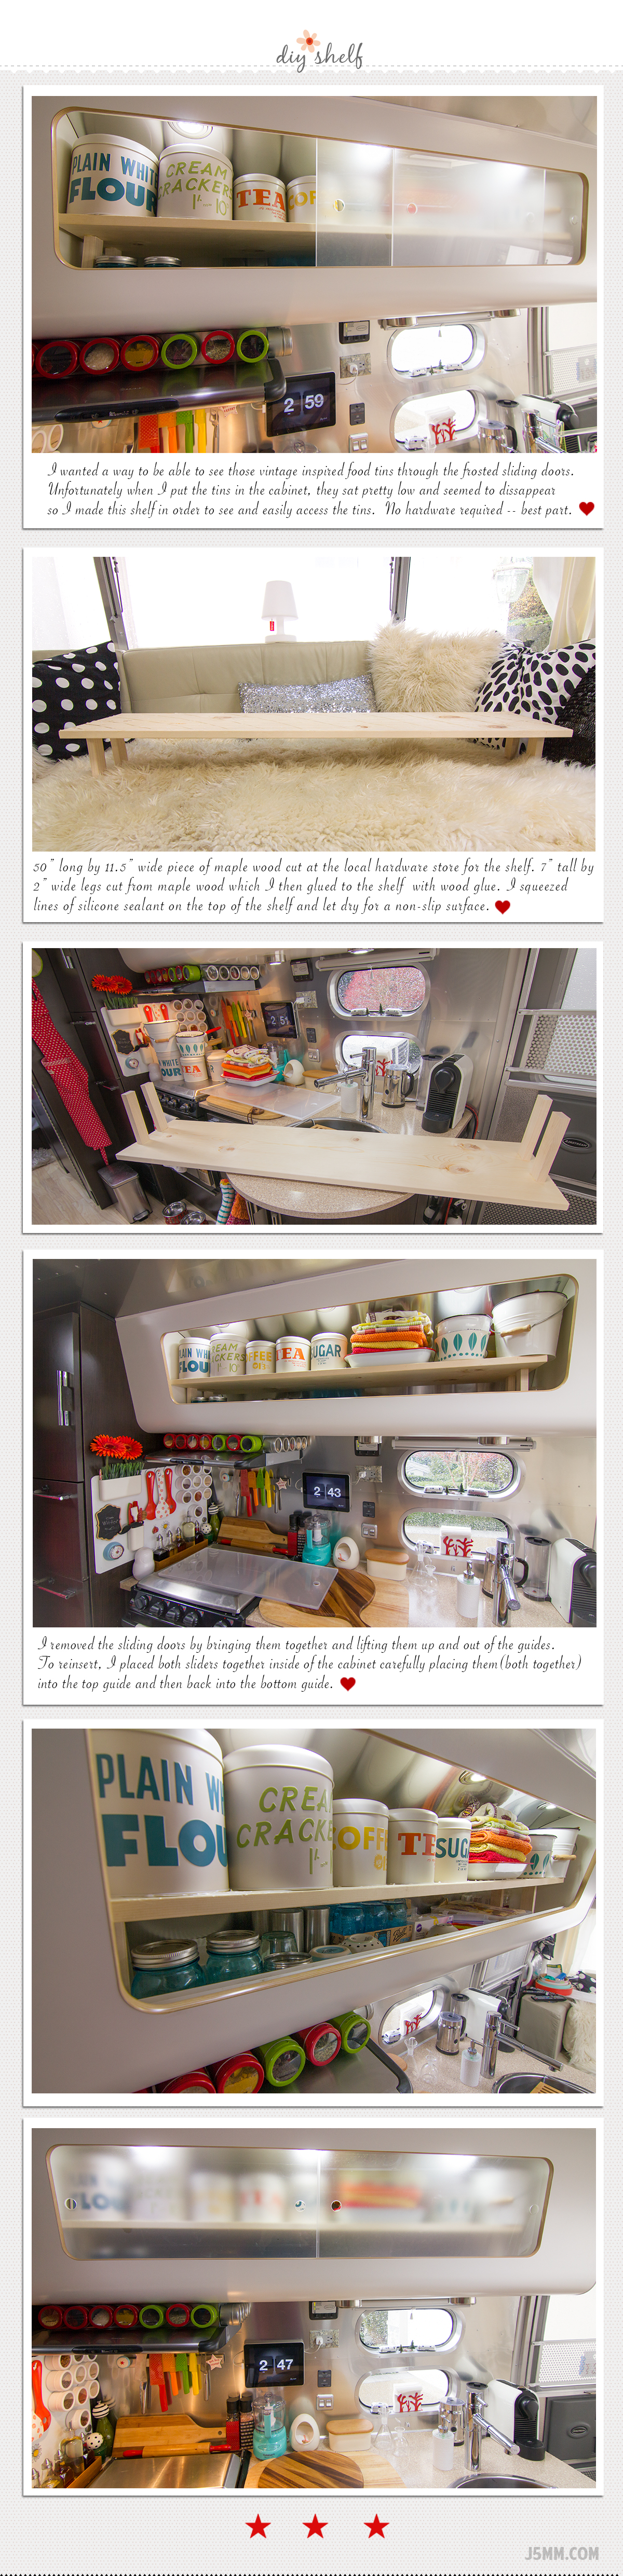 No hardware required - easy shelf for your rv / trailer kitchen via J5MM.com